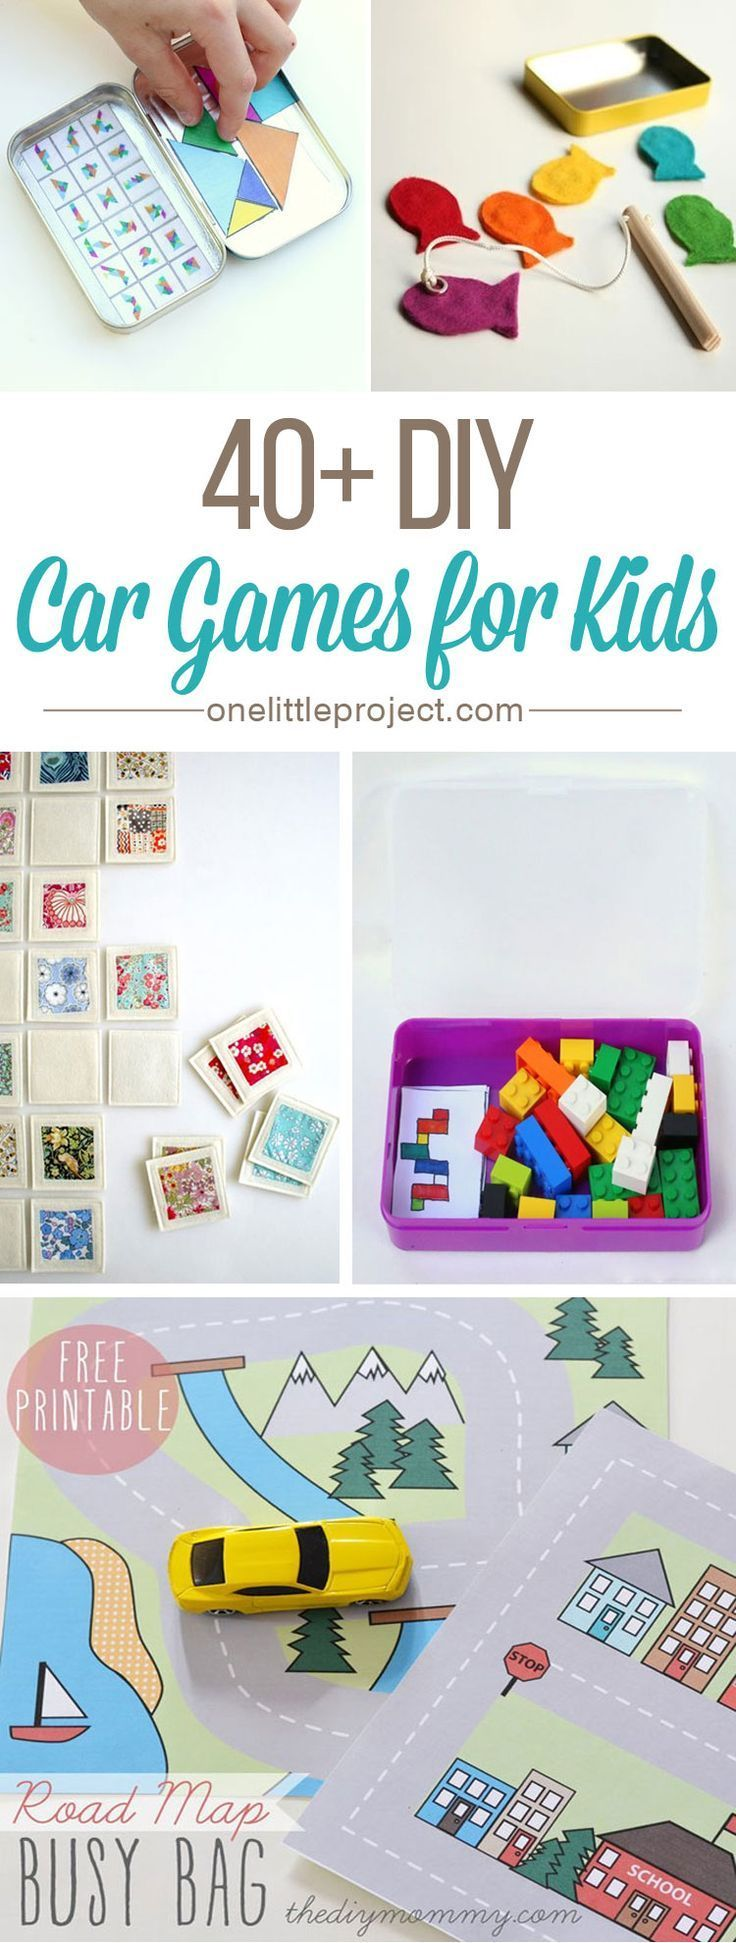 40+ DIY Car Games for Kids - This list has tons of ideas, tips and inspiration to keep your kids busy and quiet in the car or on a plane.